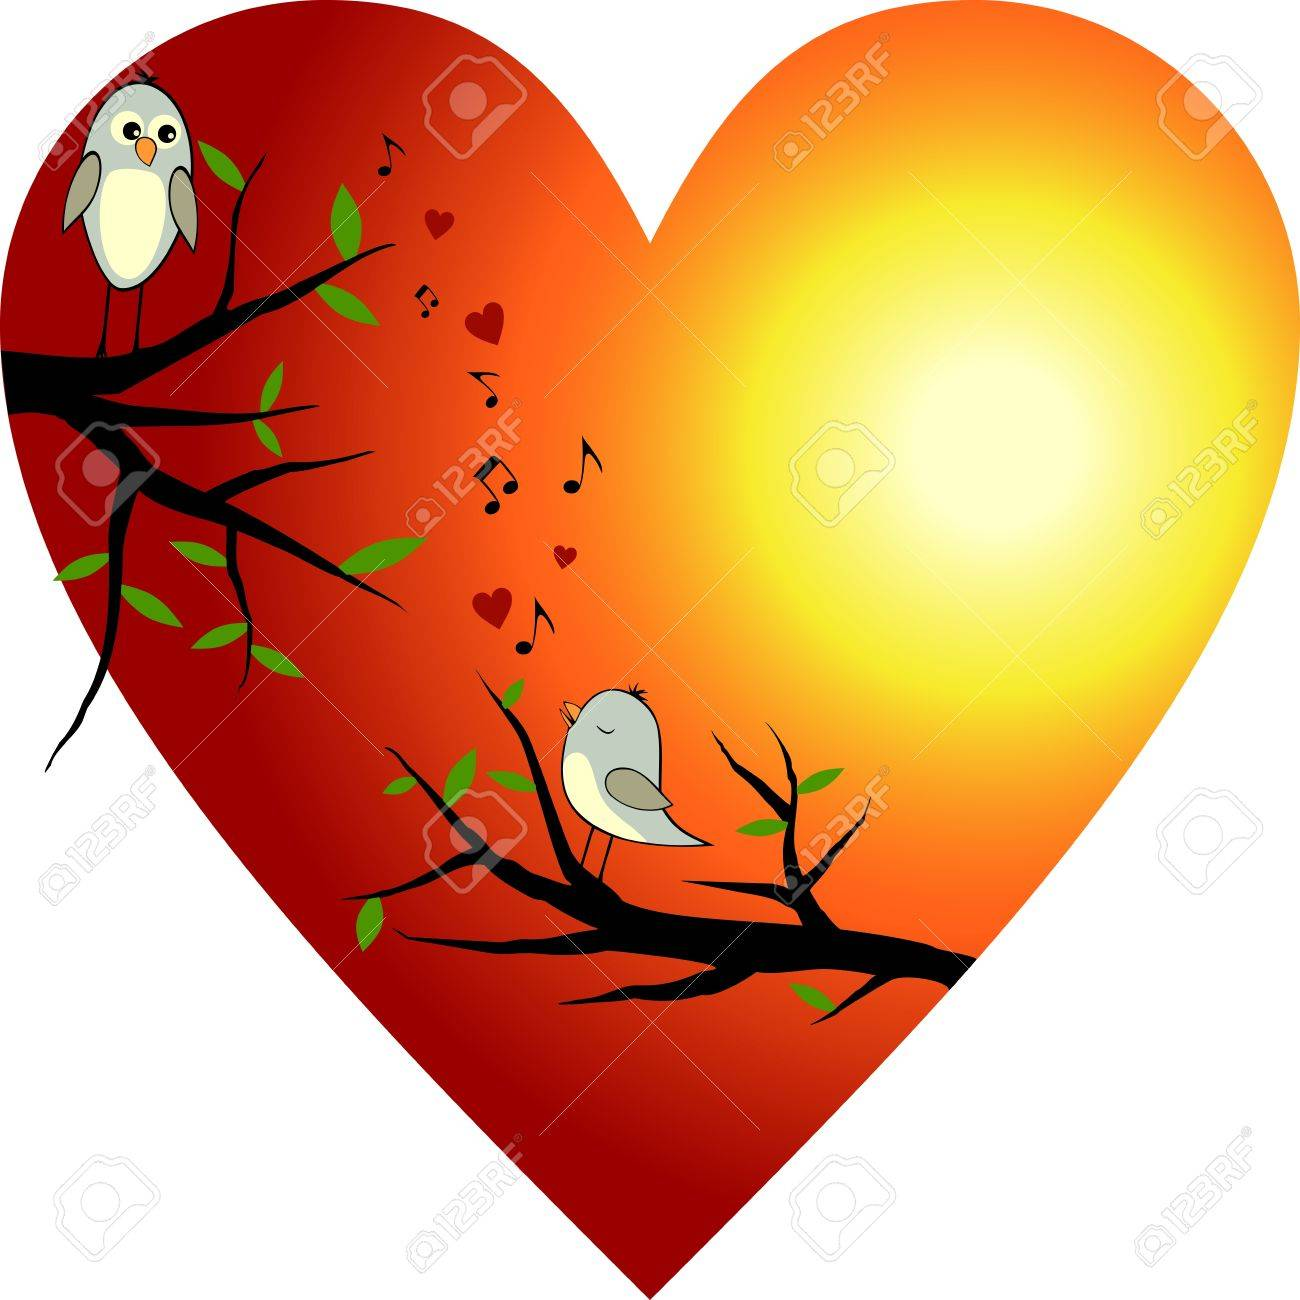 Two Birds Heart Red Heart With Two Birds